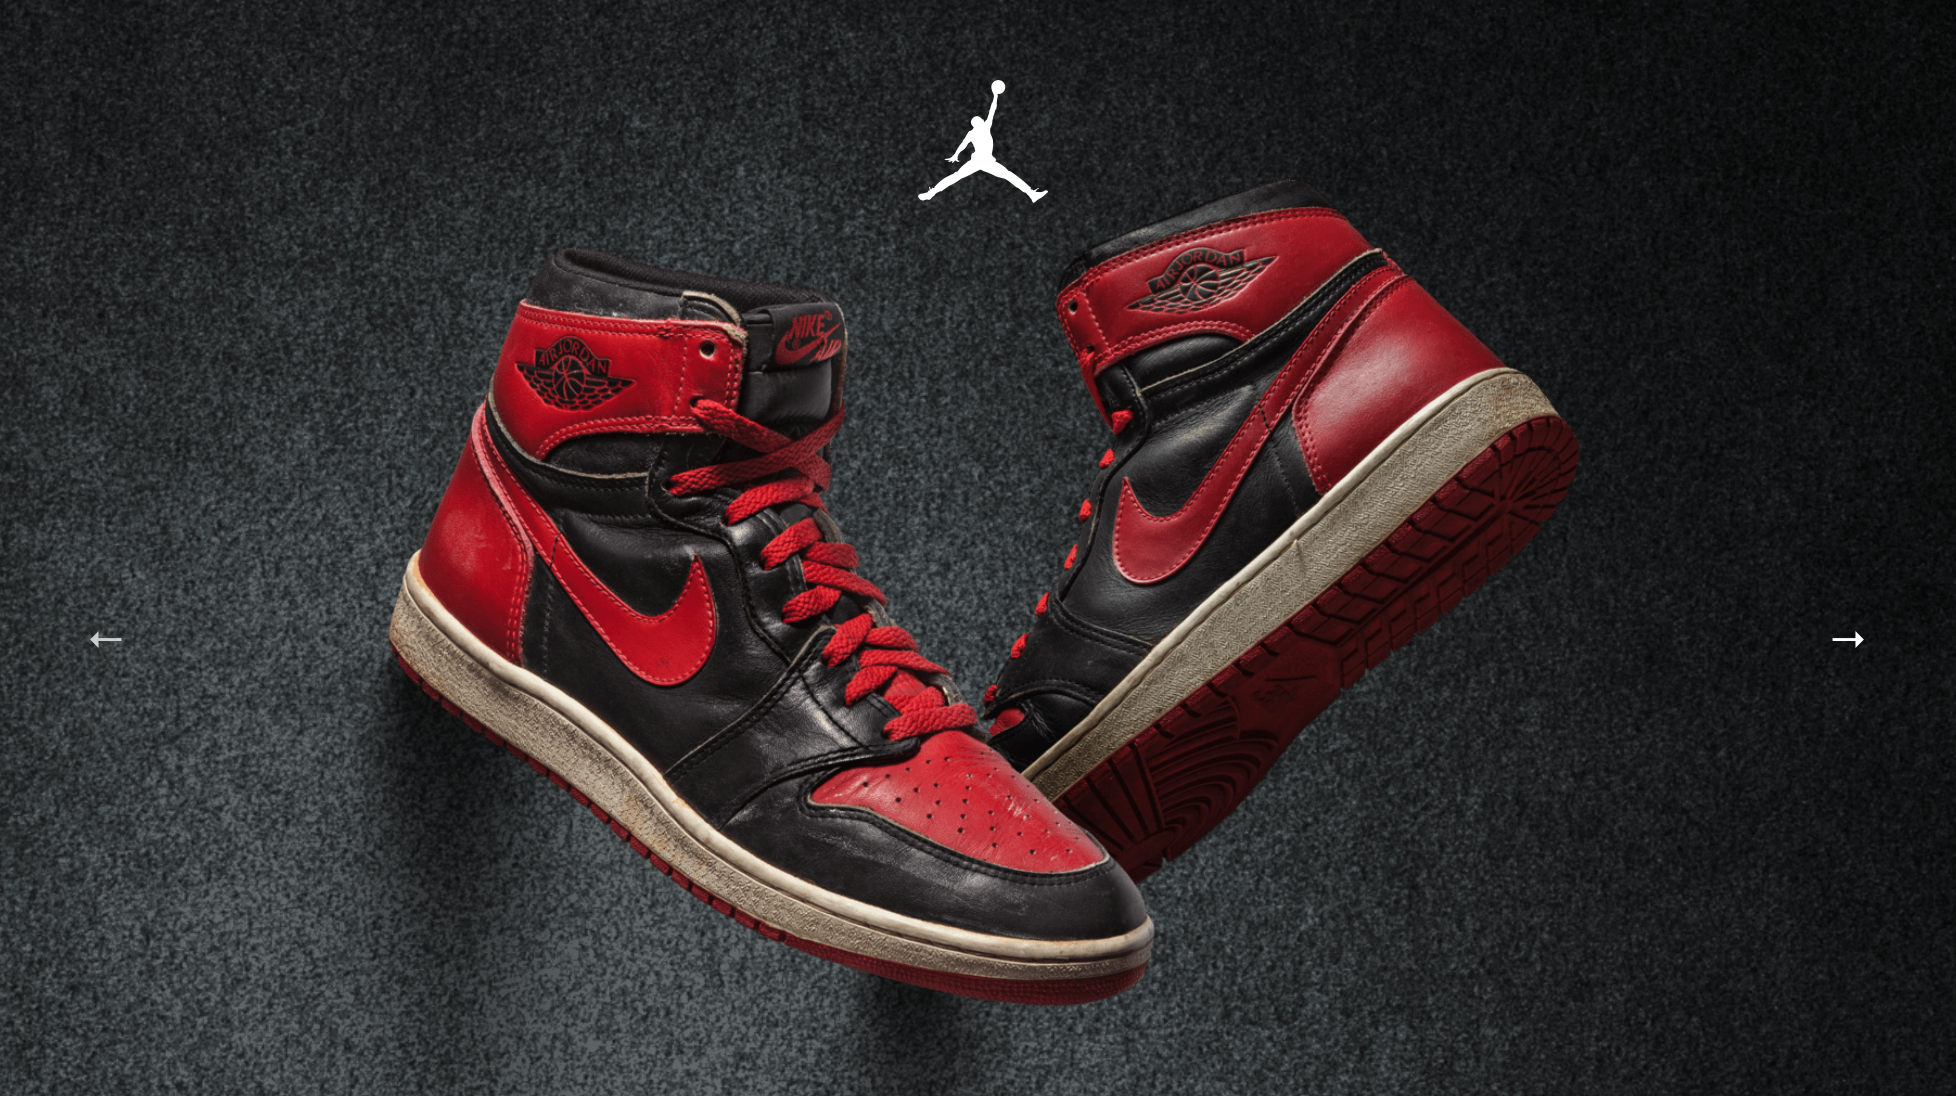 ... impressive (i'm sure it will only get better) and If you would like  more info or view what they have thus far you can check it out now Via  JORDAN BRAND